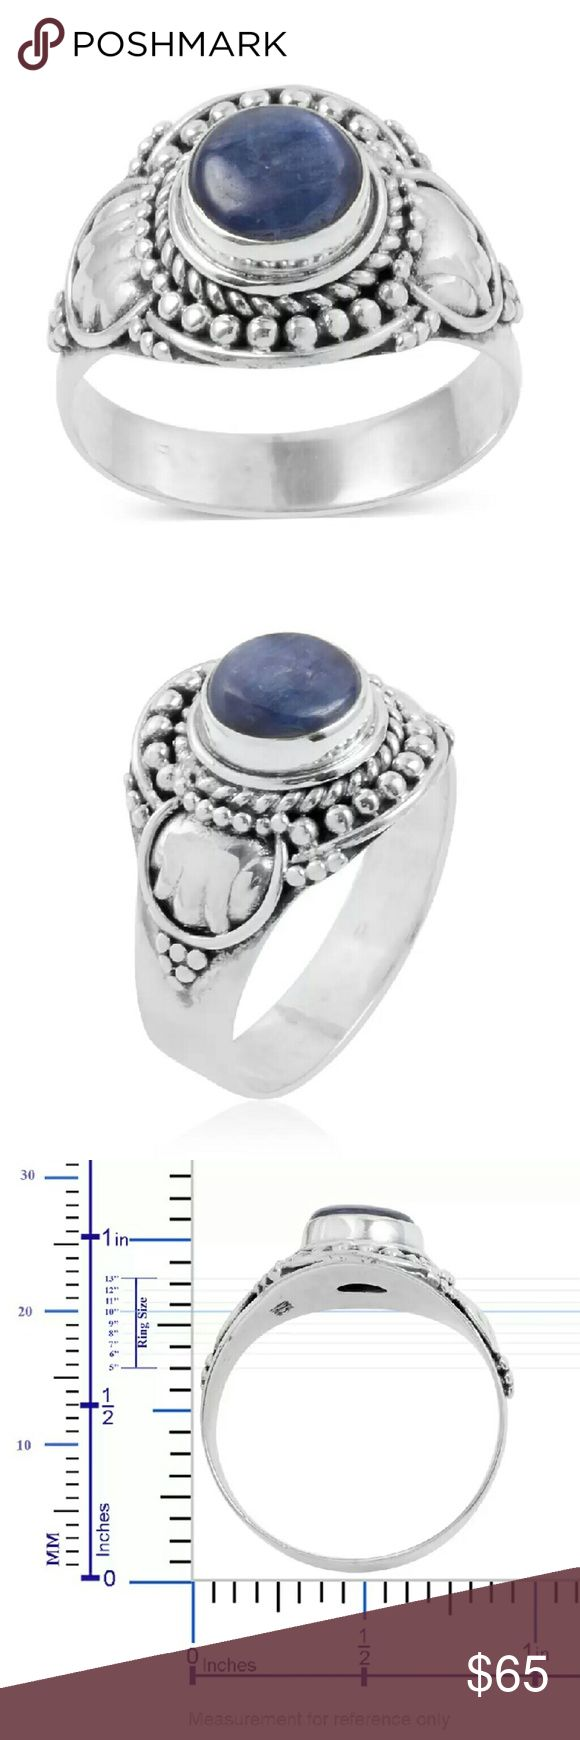 BALI HANDCRAFTED STERLING SILVER RING BALI LEGACY COLLECTION HANDCRAFTED GENUINE HIMALAYAN KYANITE RING SET IN PURE 925-STERLING SILVER/NICKEL FREE-TCW-2.270 BALI LEGACY COLLECTION Jewelry Rings